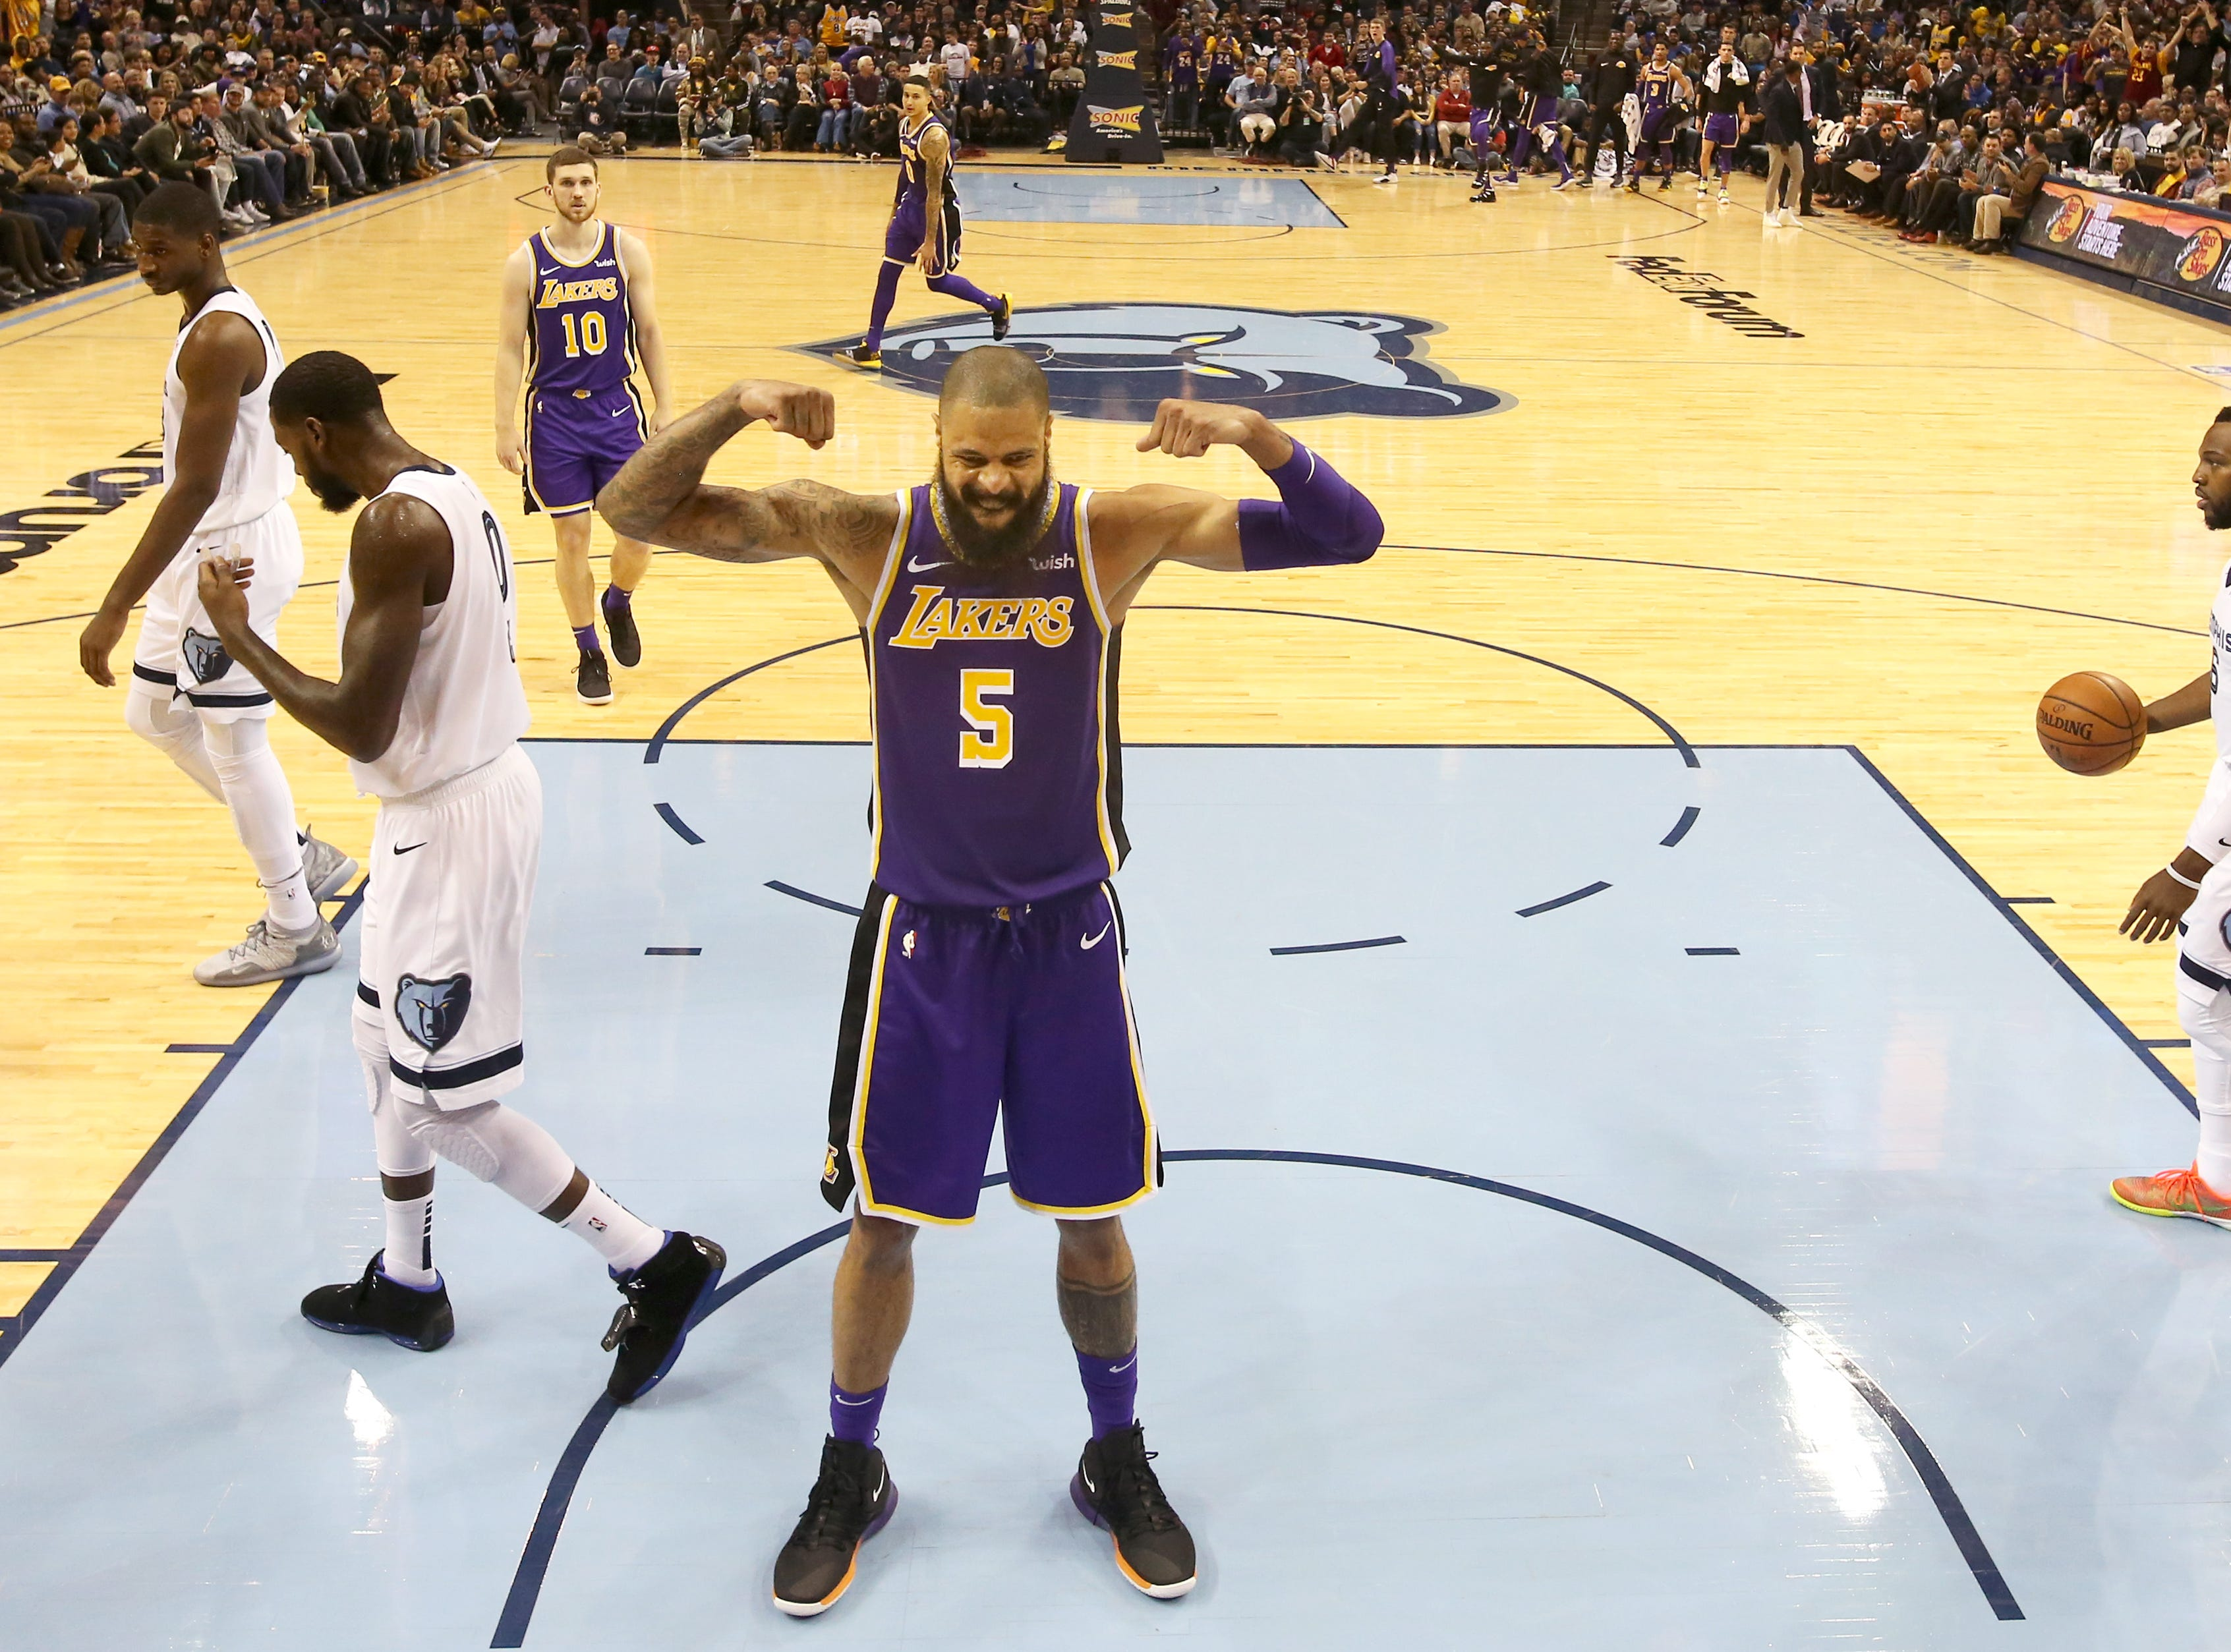 Los Angeles Lakers center Tyson Chandler flexes after a dunk by LeBron James during their game against the Memphis Grizzlies at the FedExForum on Saturday, Dec. 8, 2018.